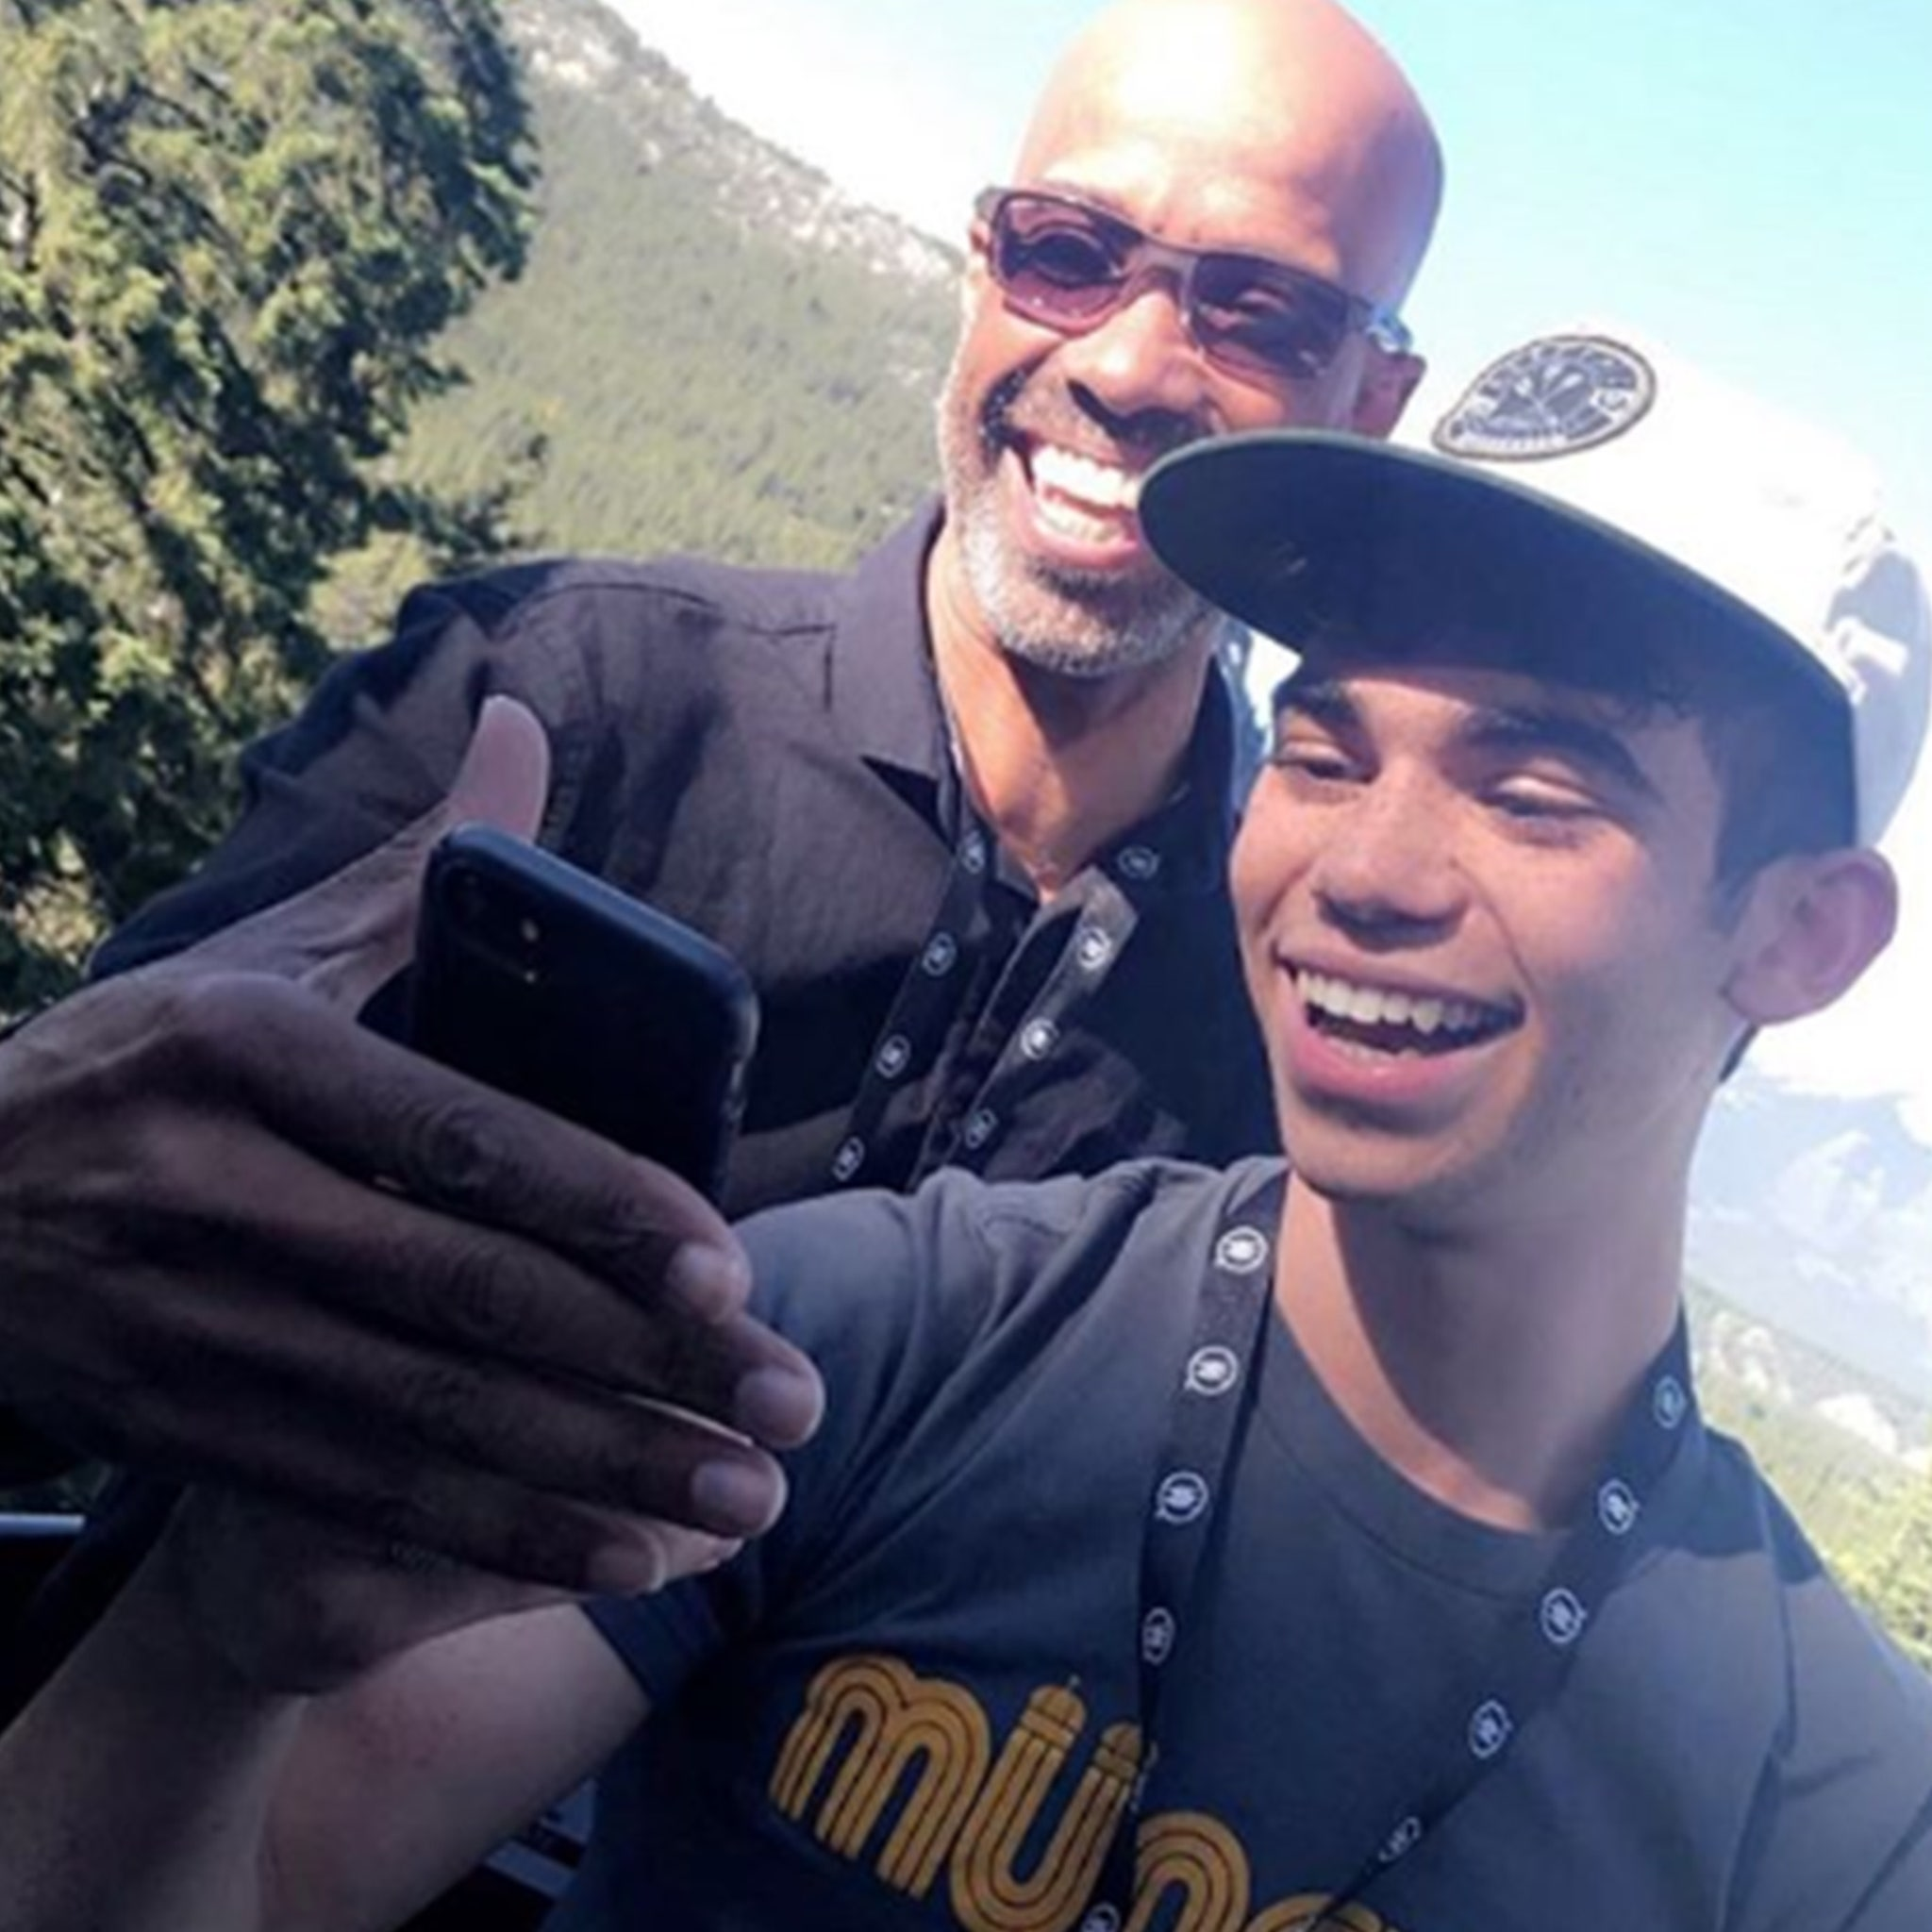 Cameron Boyce S Dad Speaks Out About Son S Death Shares Heartbreaking Photo On Instagram